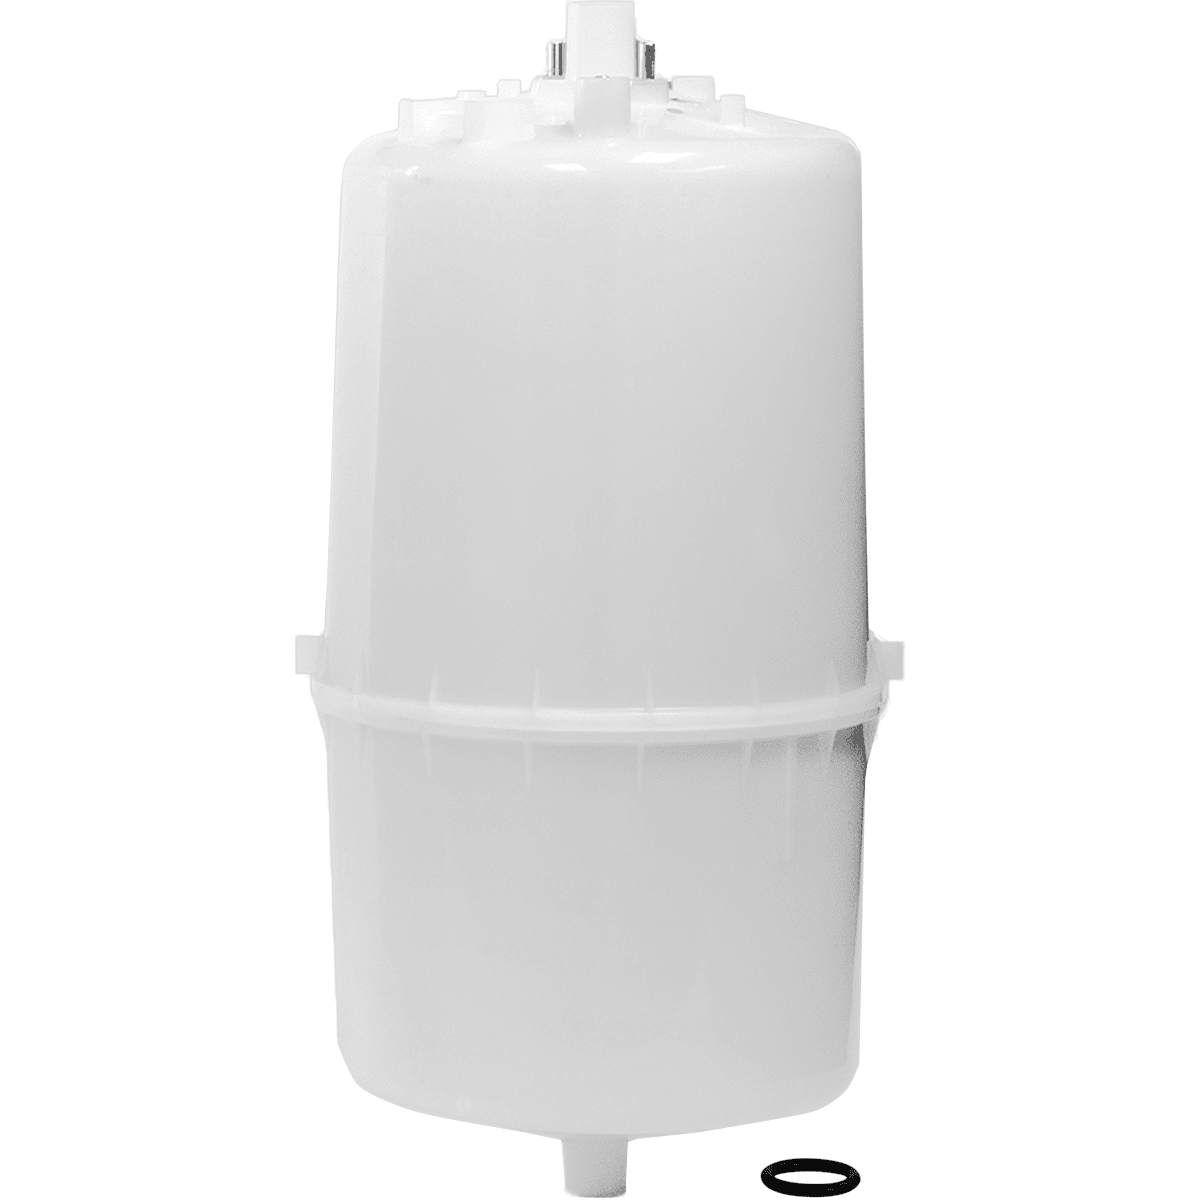 Aprilaire 309aac Steam Humidifier Cylinder (fits Nortec® 309)